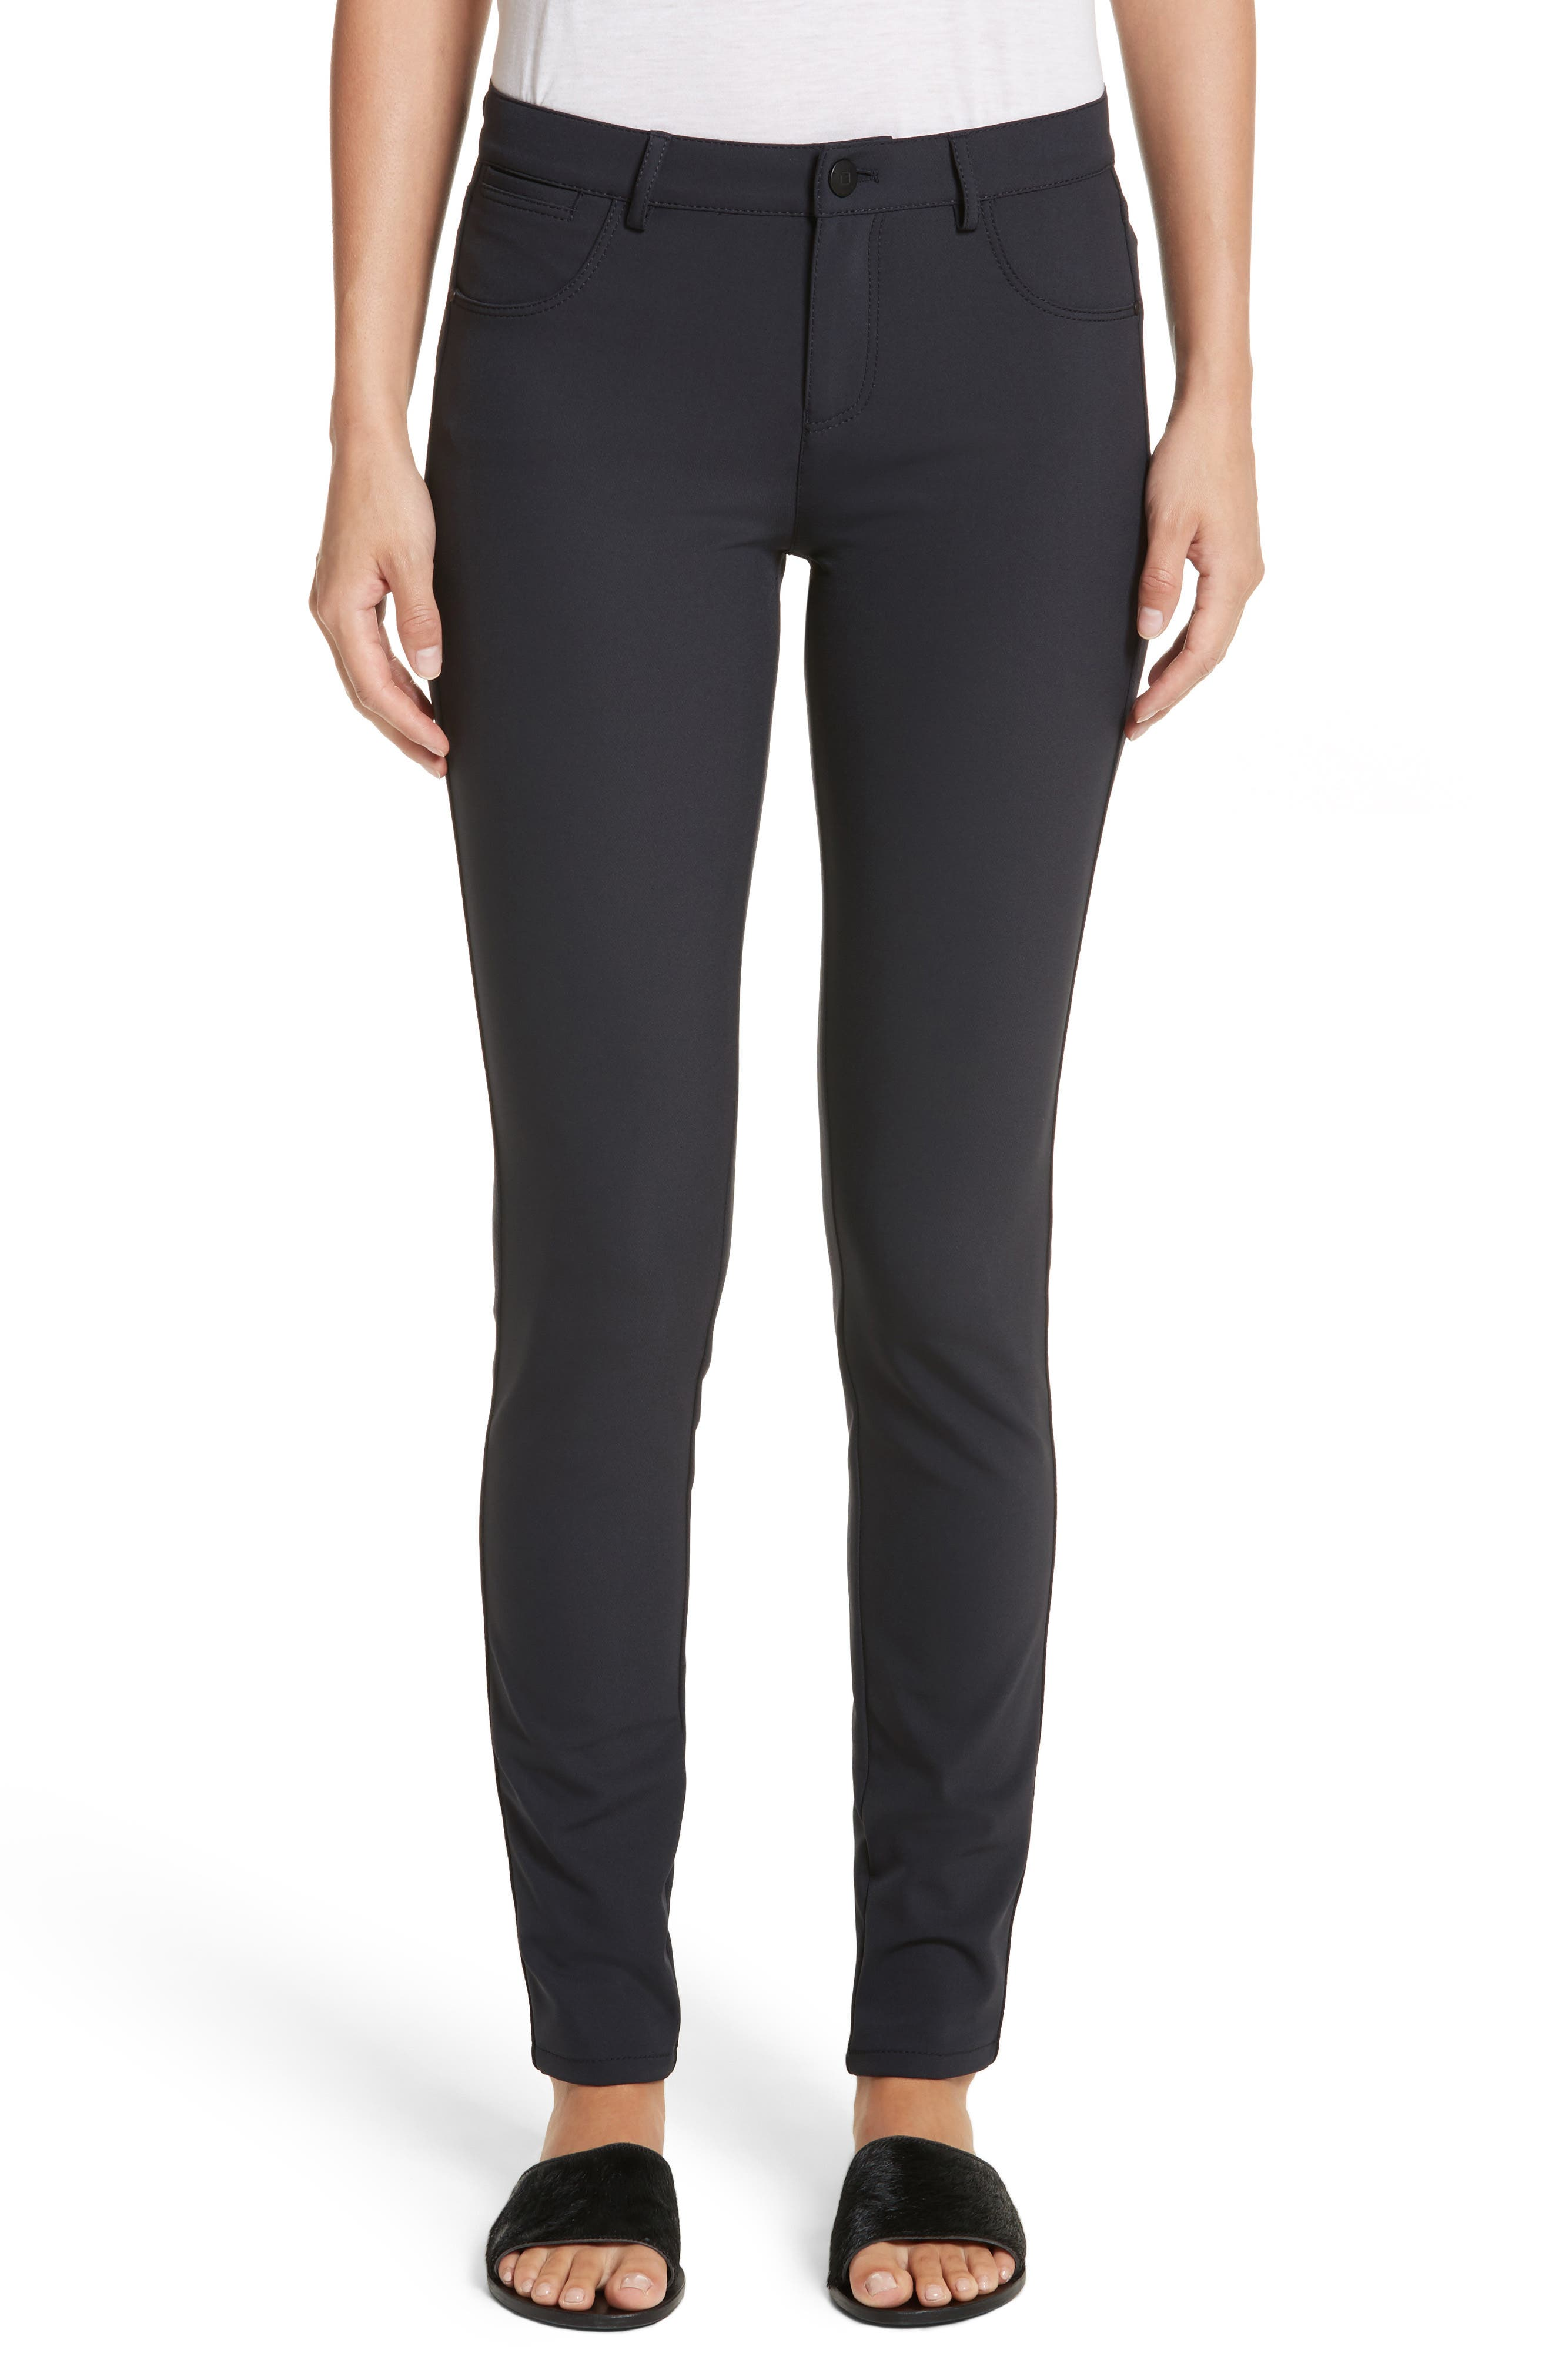 Mercer Acclaimed Stretch Mid-Rise Skinny Jeans in Ink